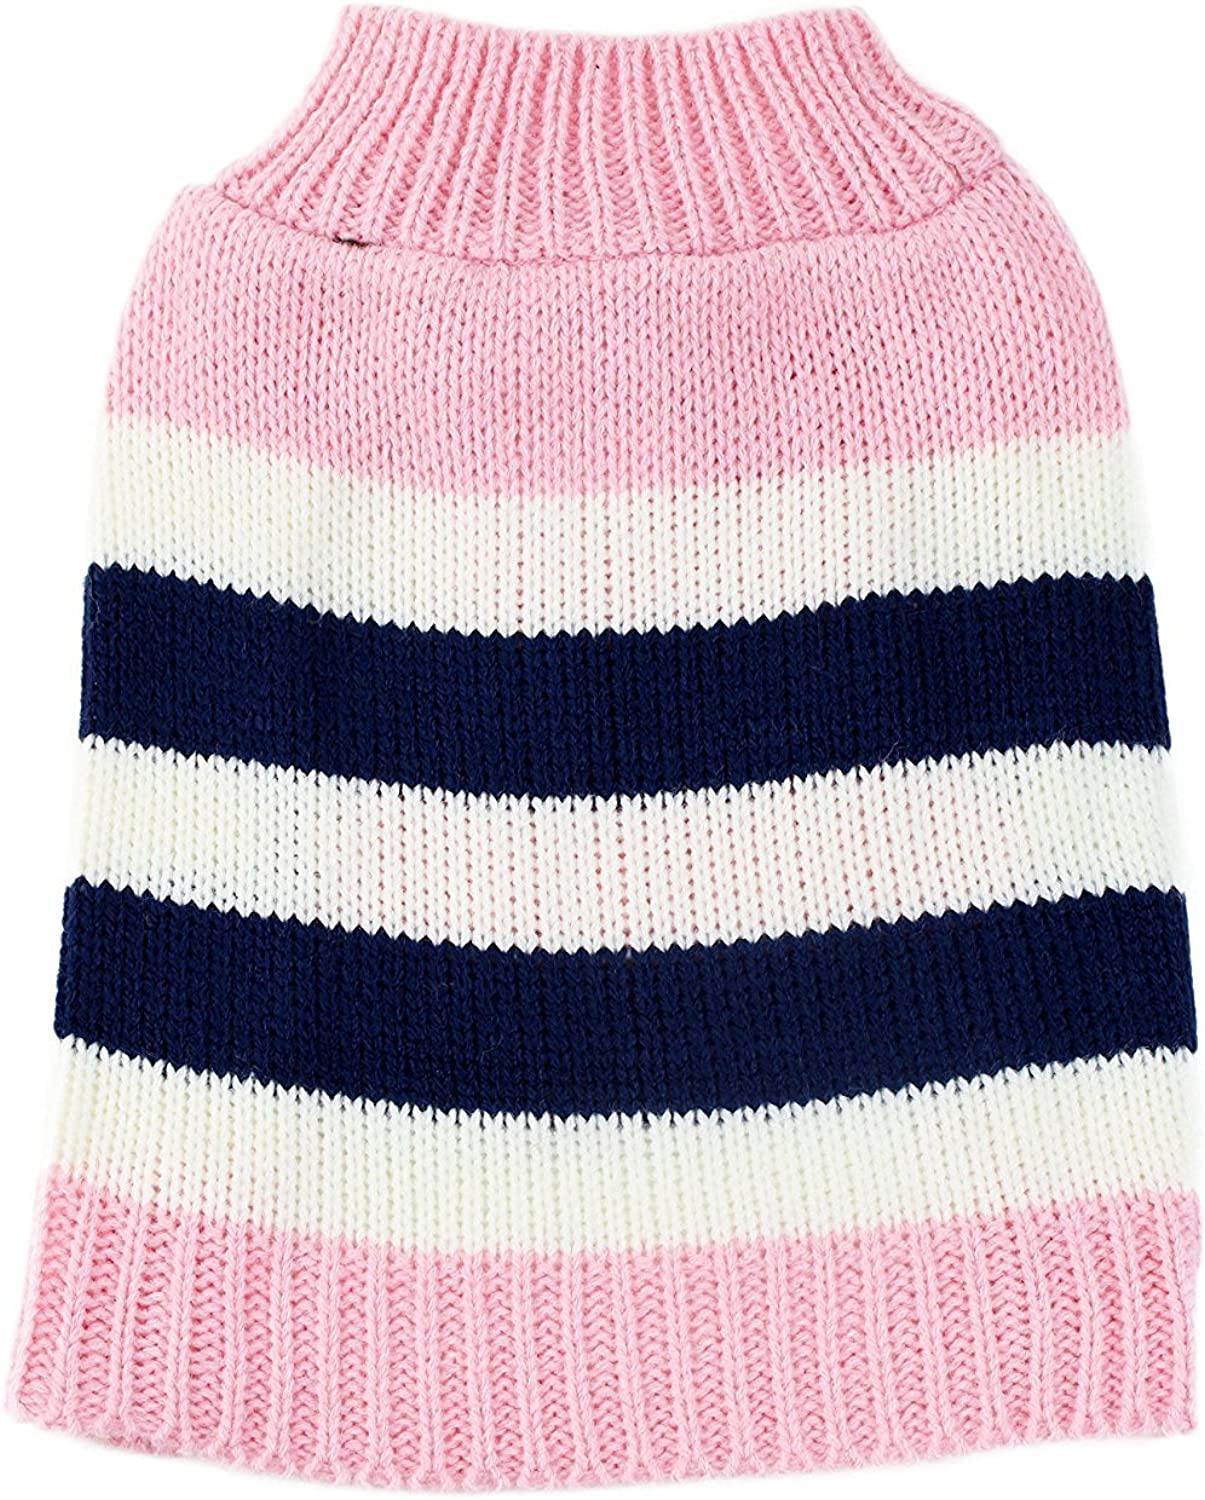 Pink Striped colorblock Dog Sweater by Midlee (Medium)